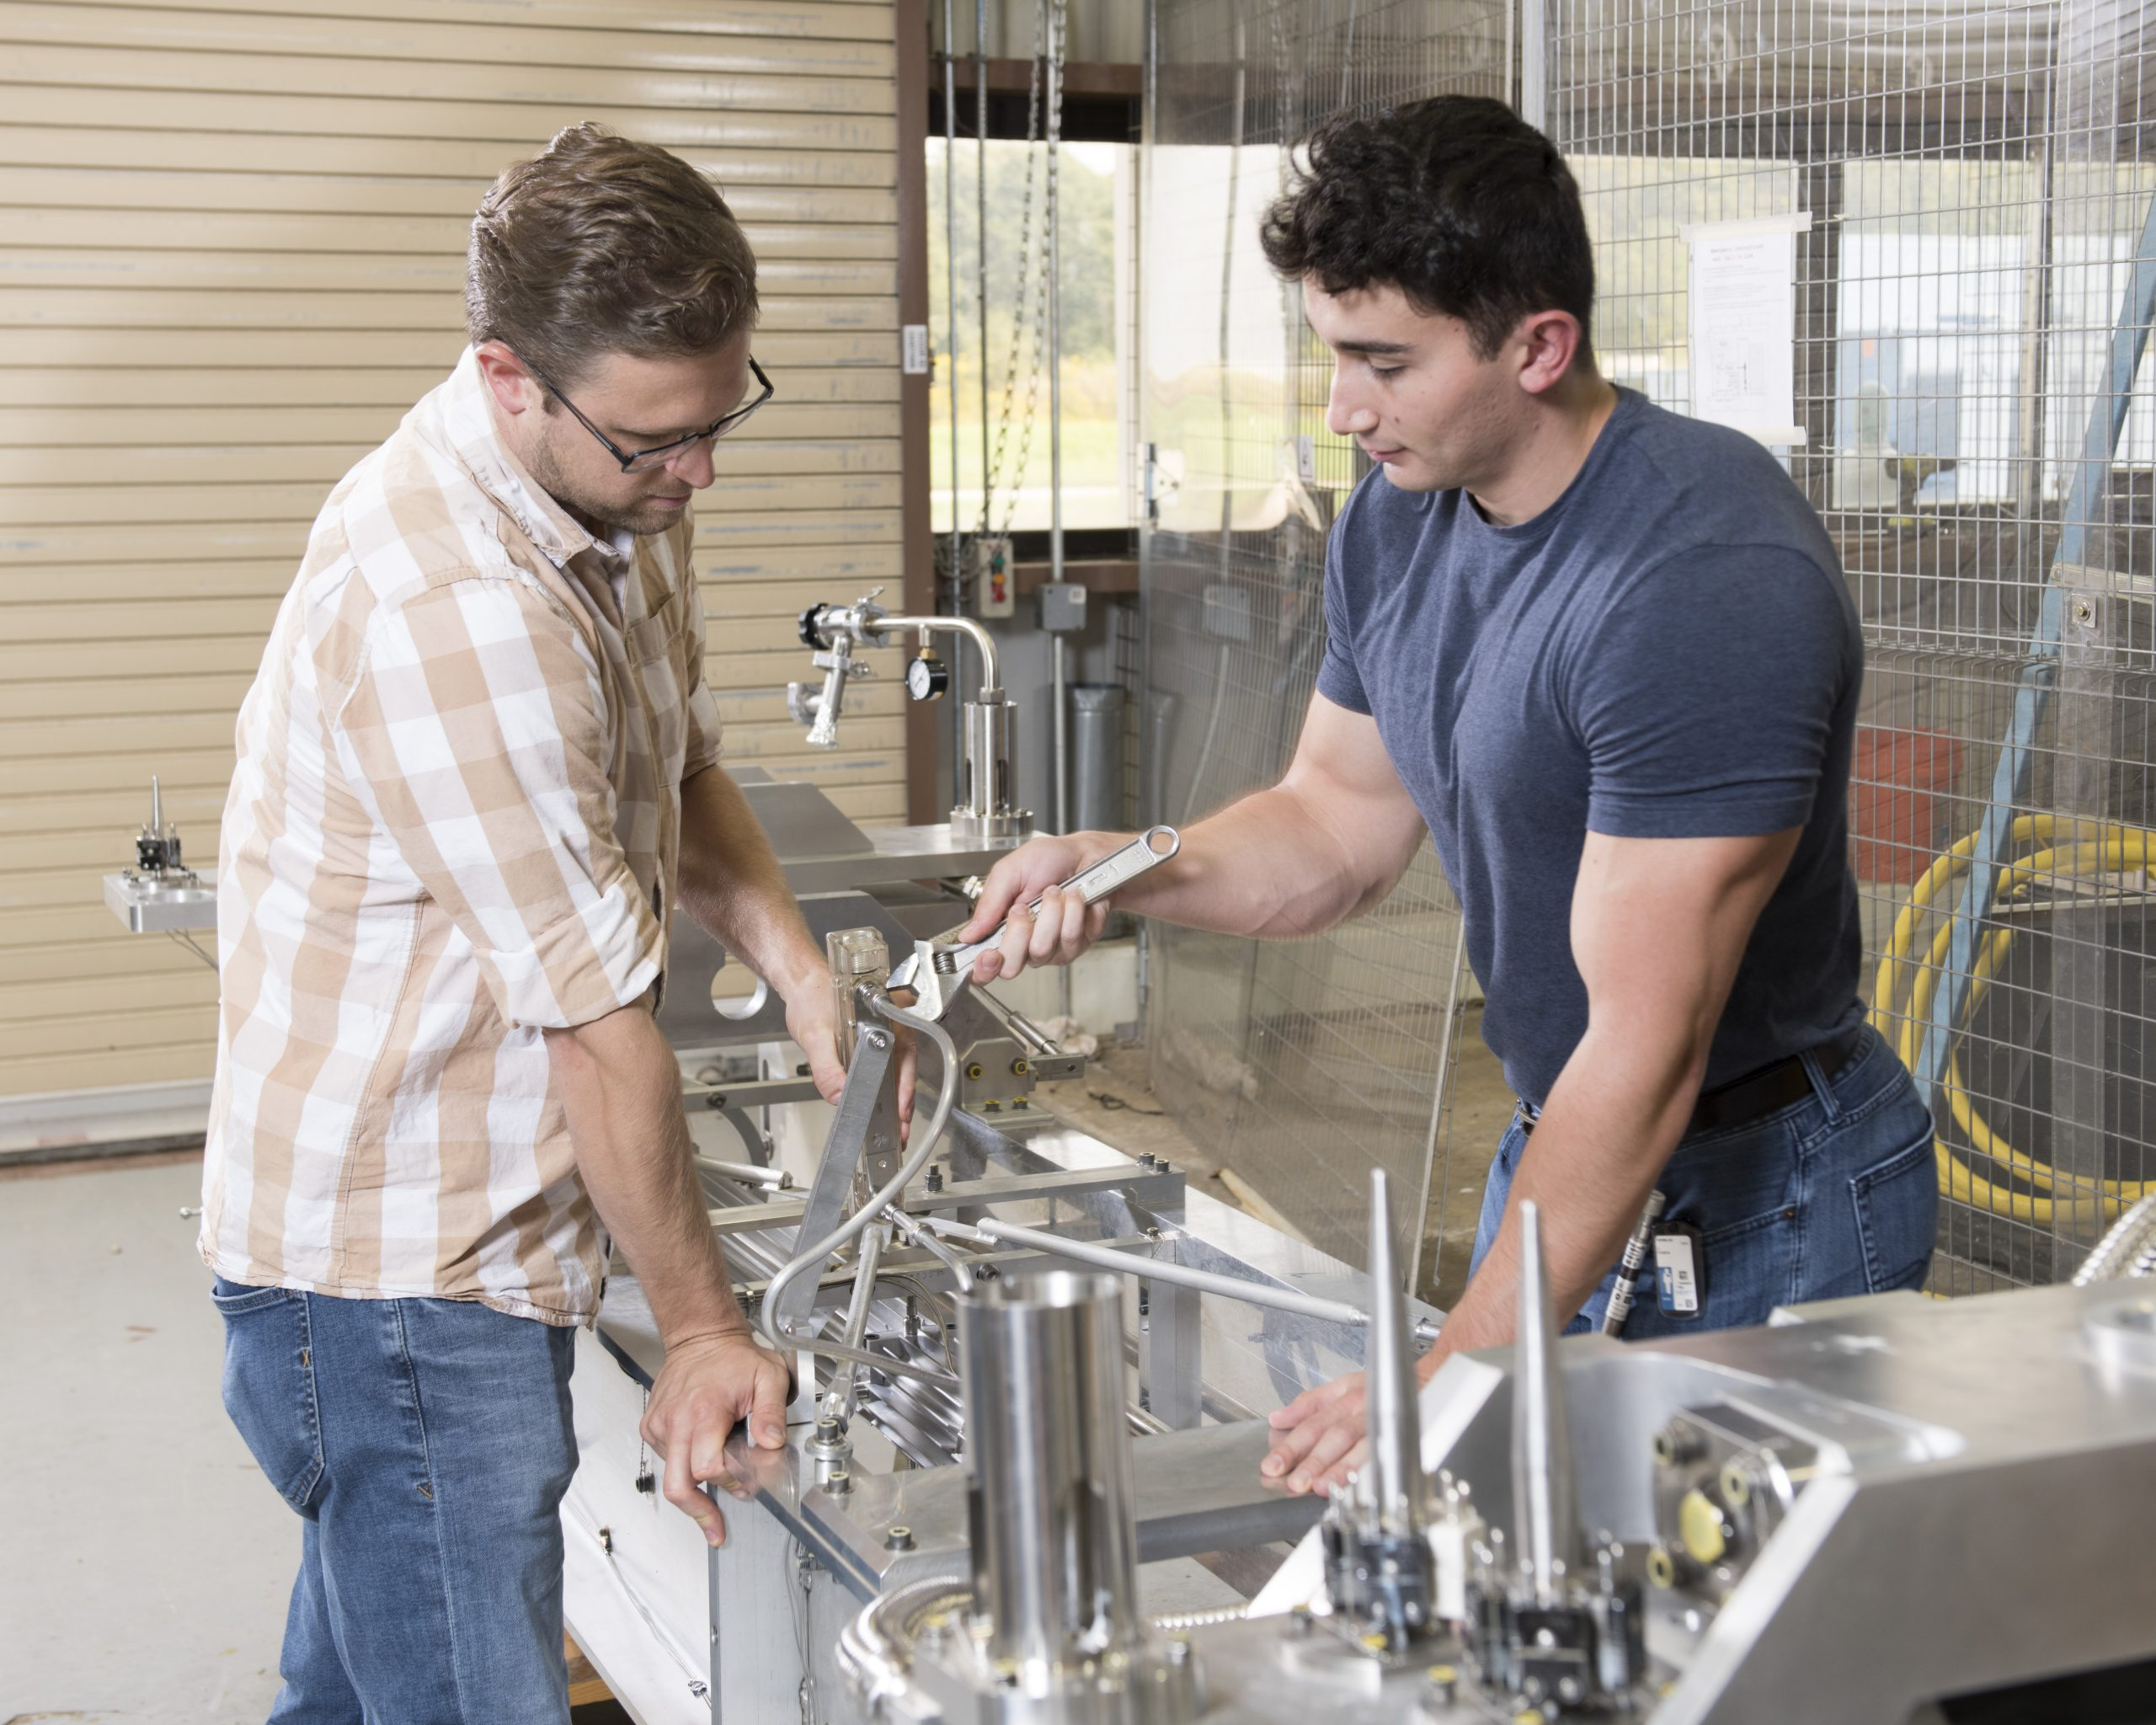 Two young men, one in glasses and a plaid shirt, one in a blue tshirt, stare at a silver-colored instrument between them. The instrument almost looks like a complicated sink with lots of nozzles and add-ons. The man in the blue shirt passes a wrench to the man in the plaid shirt.